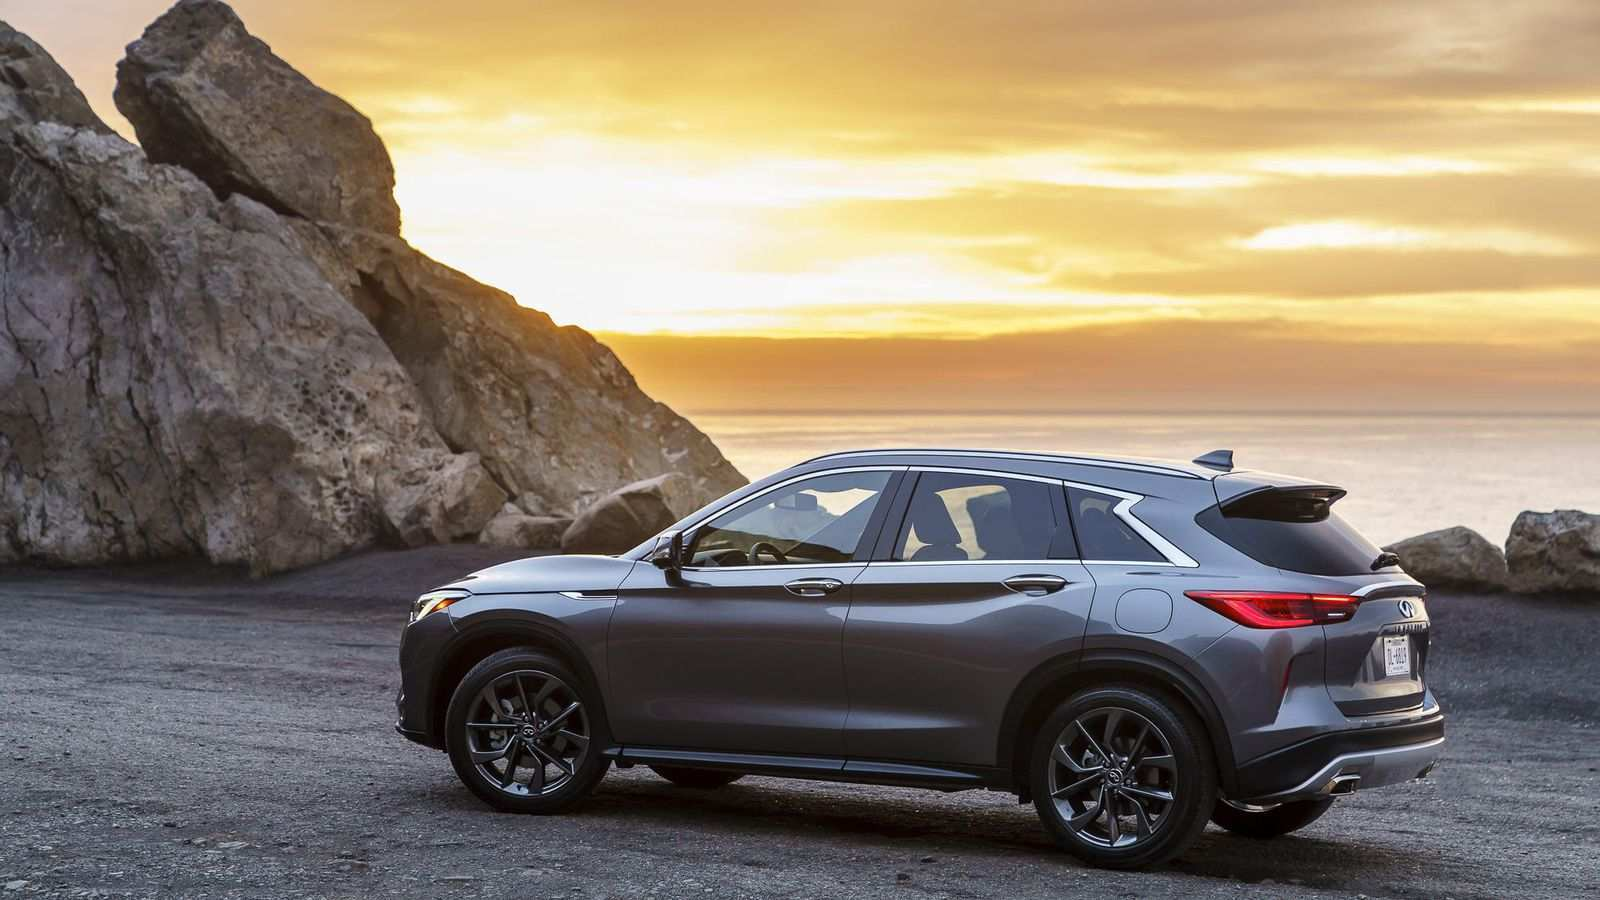 19 Gallery of 2019 Infiniti Qx50 Review Release Date with 2019 Infiniti Qx50 Review